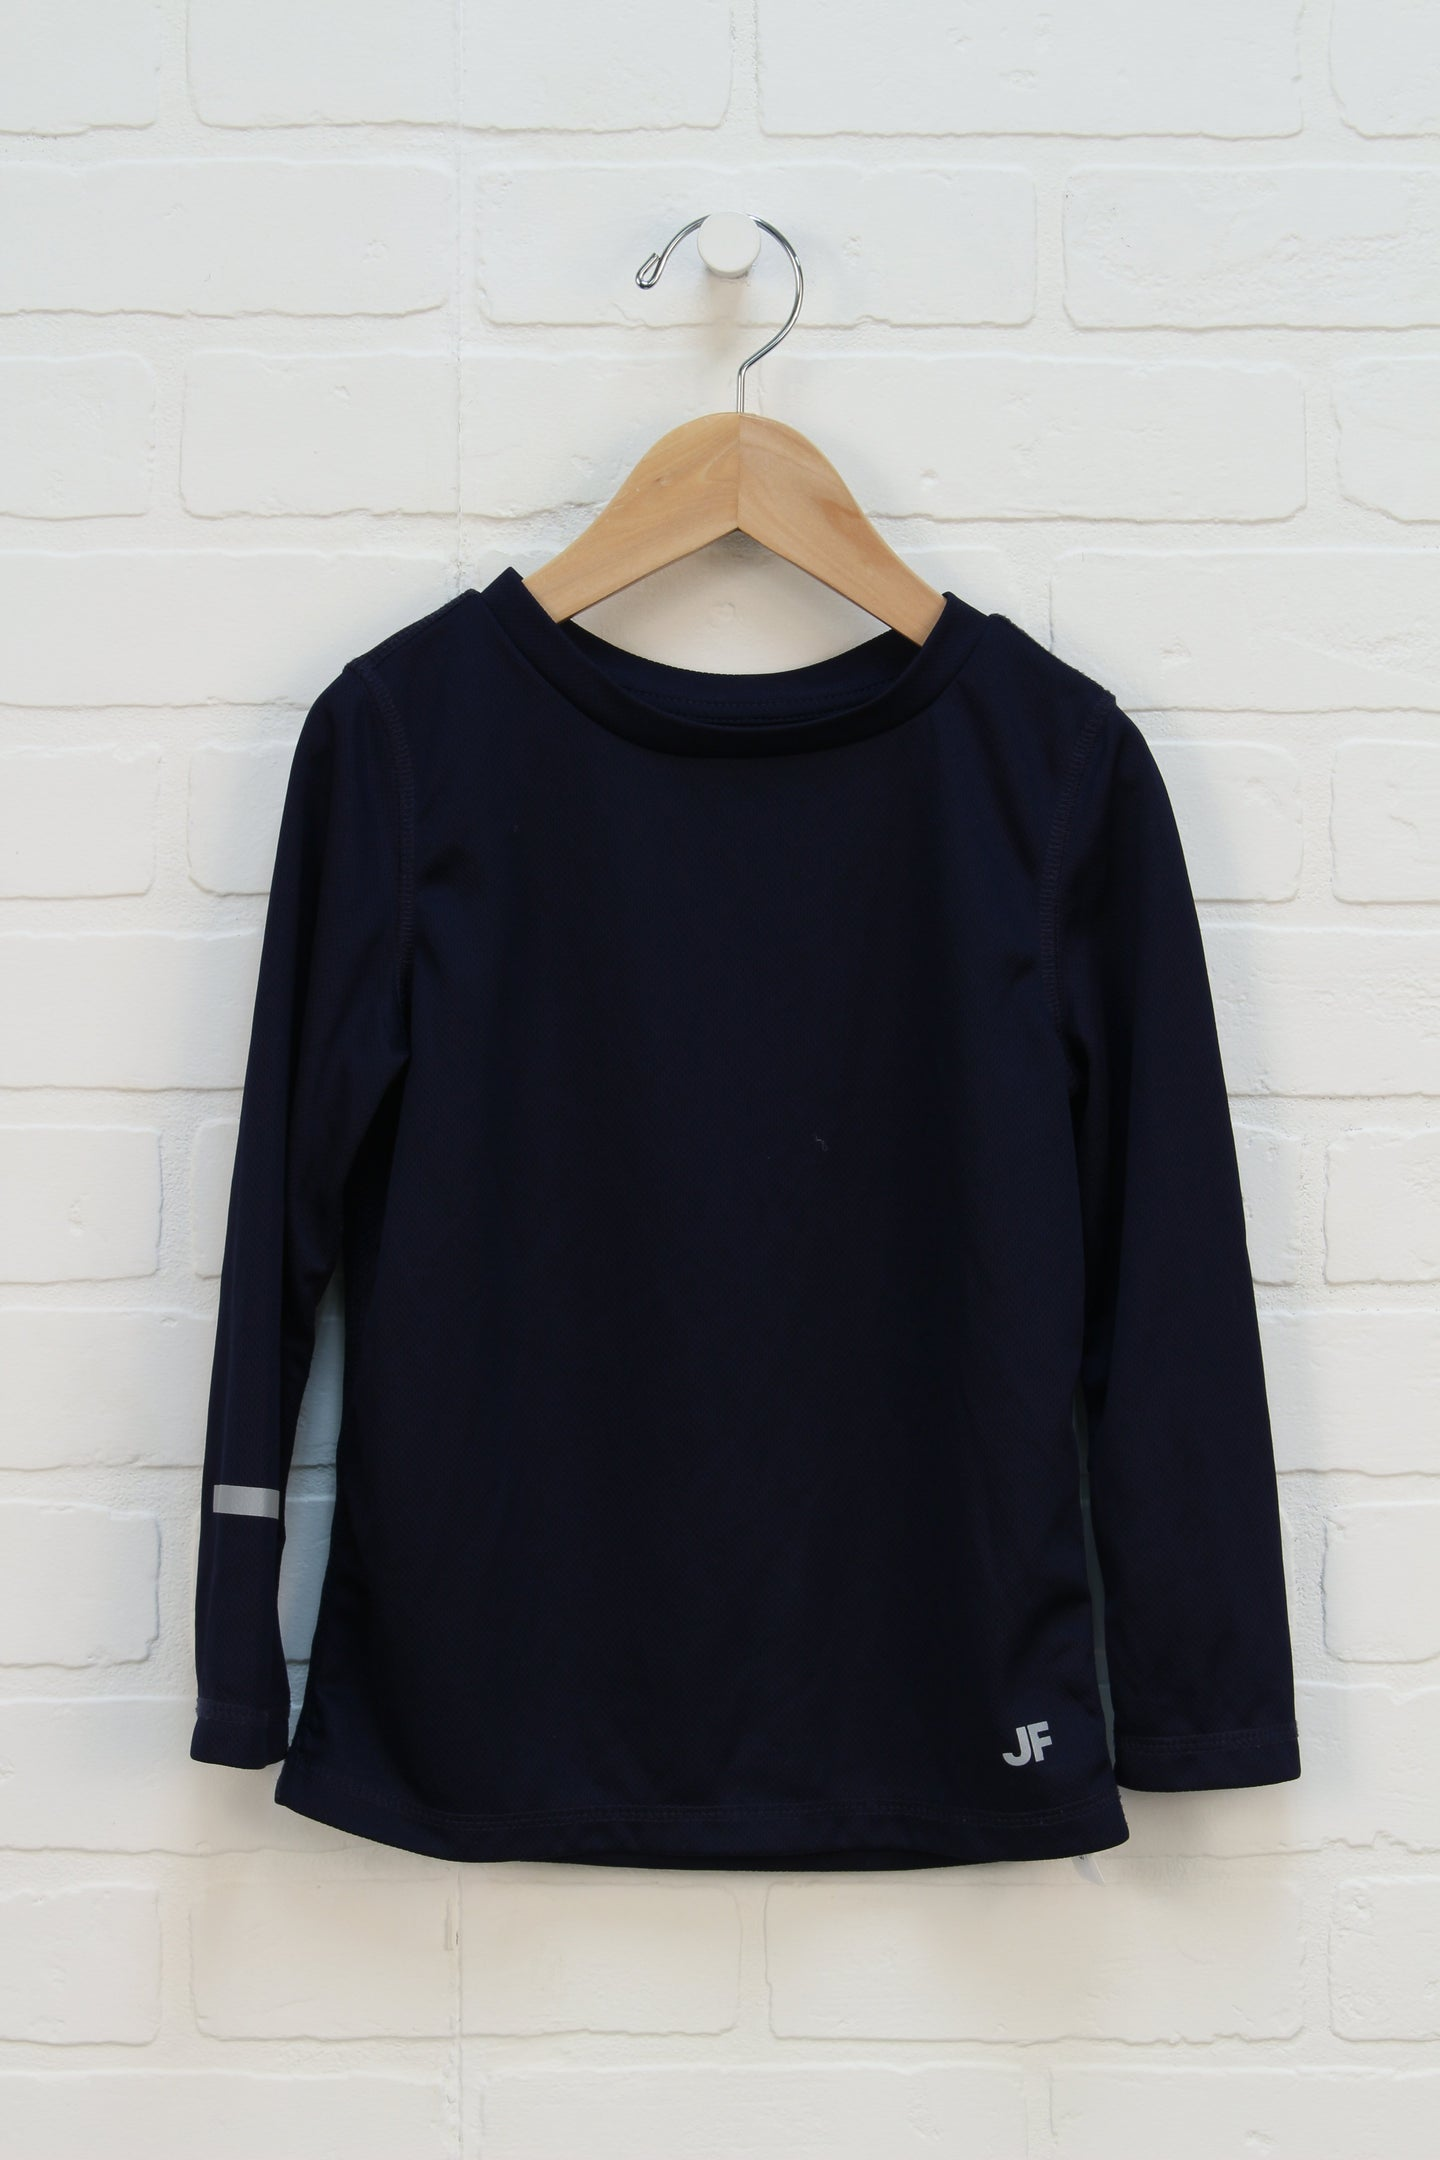 Navy Athletic Top (Size 5)